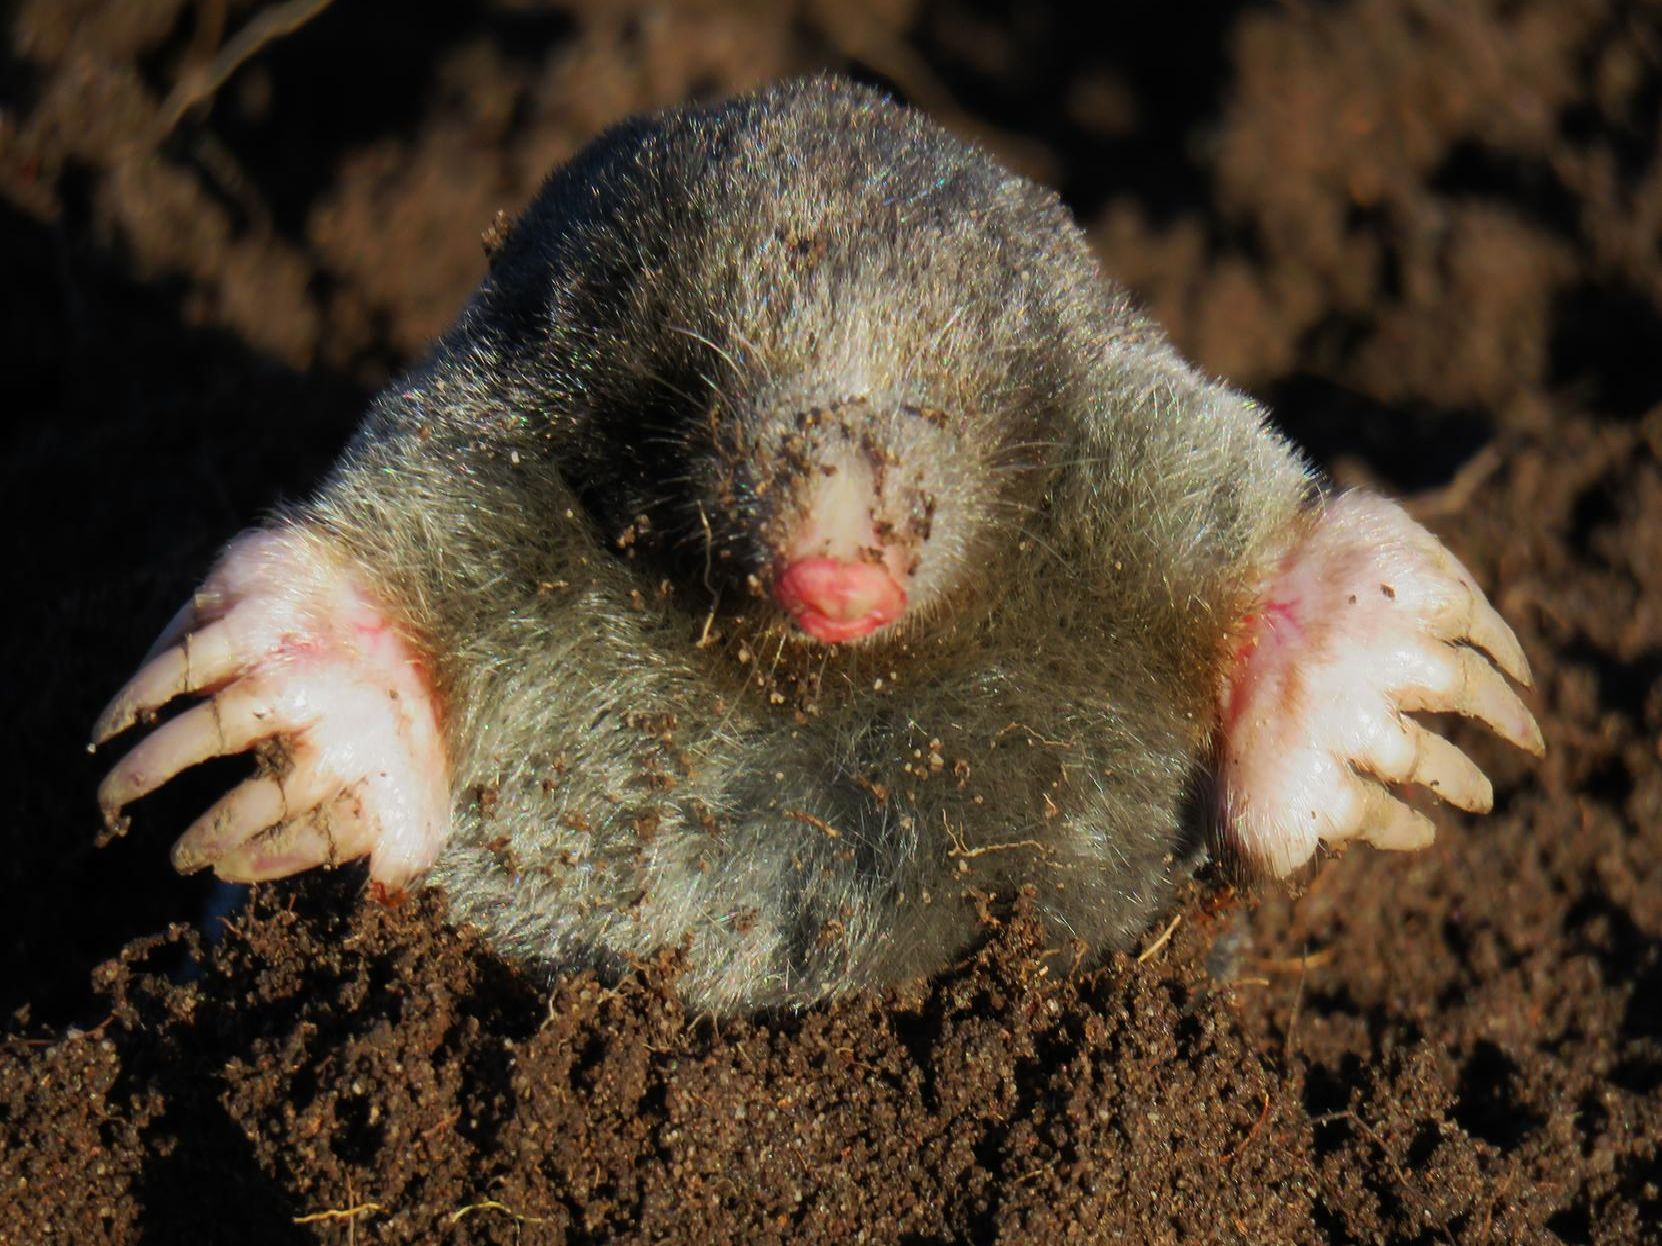 Trevor Harris timed this magnificent shot perfectly as a mole popped up out of the ground.